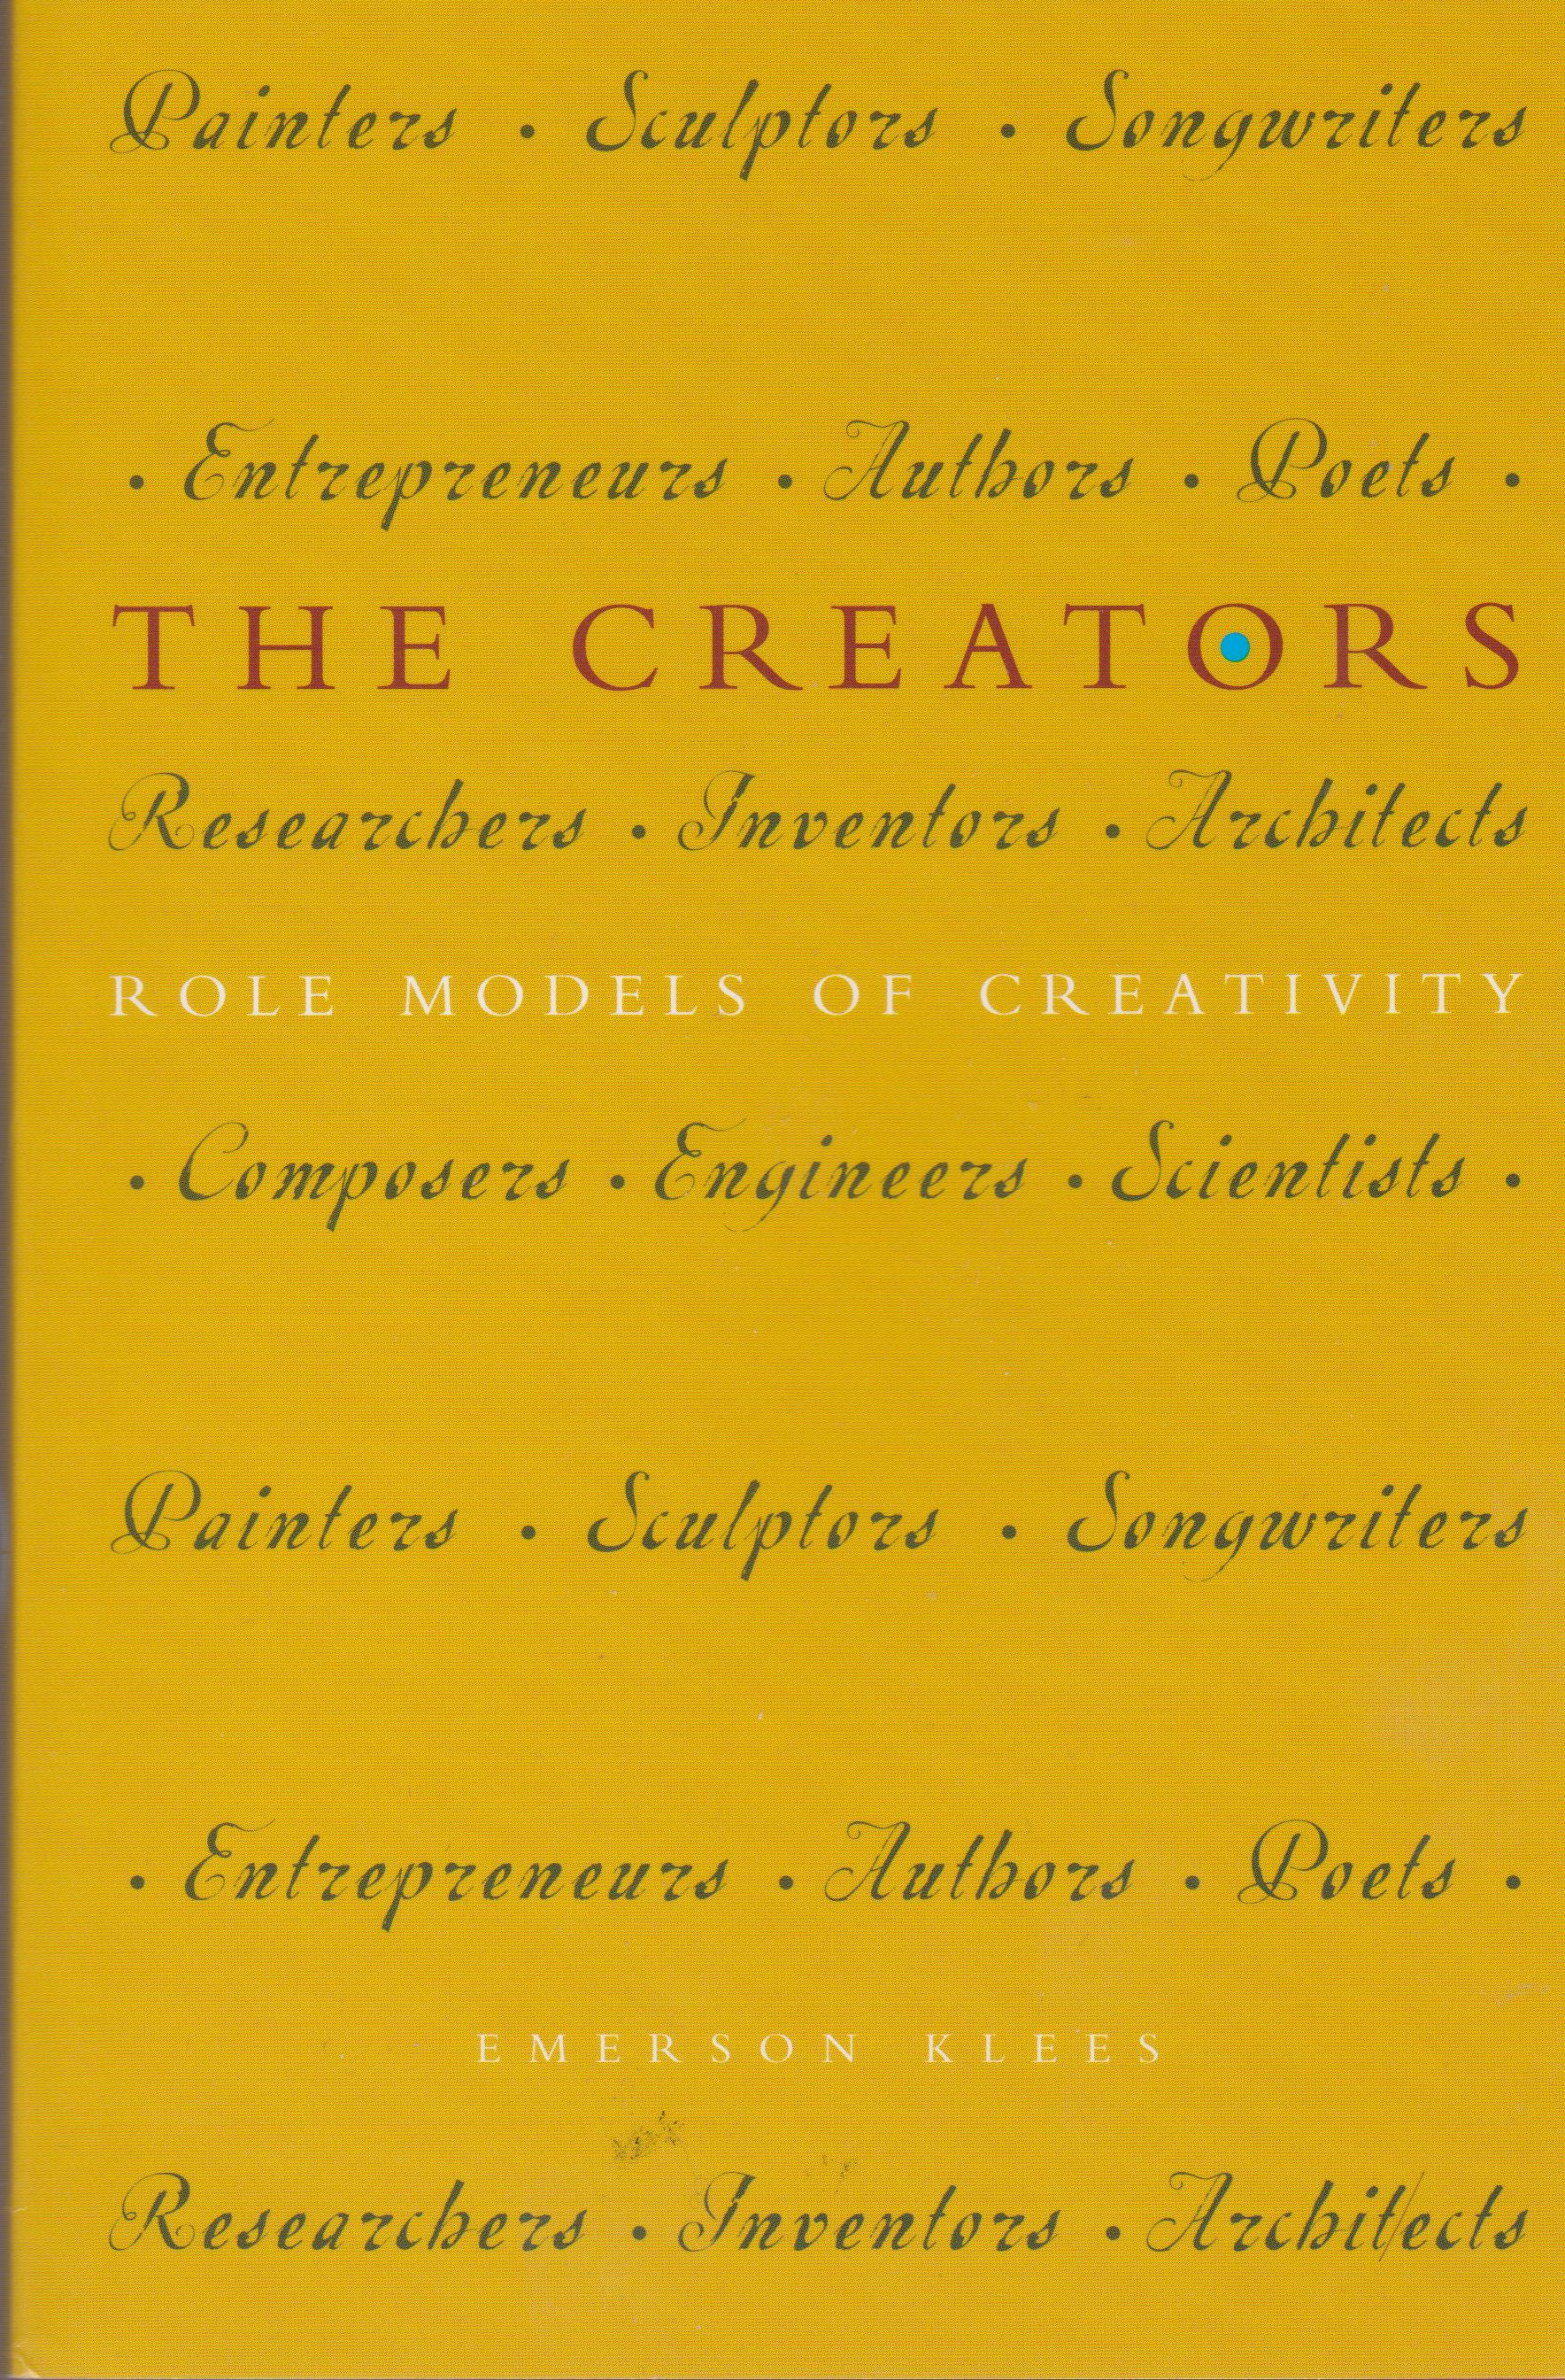 The Creators: Role Models of Creativity